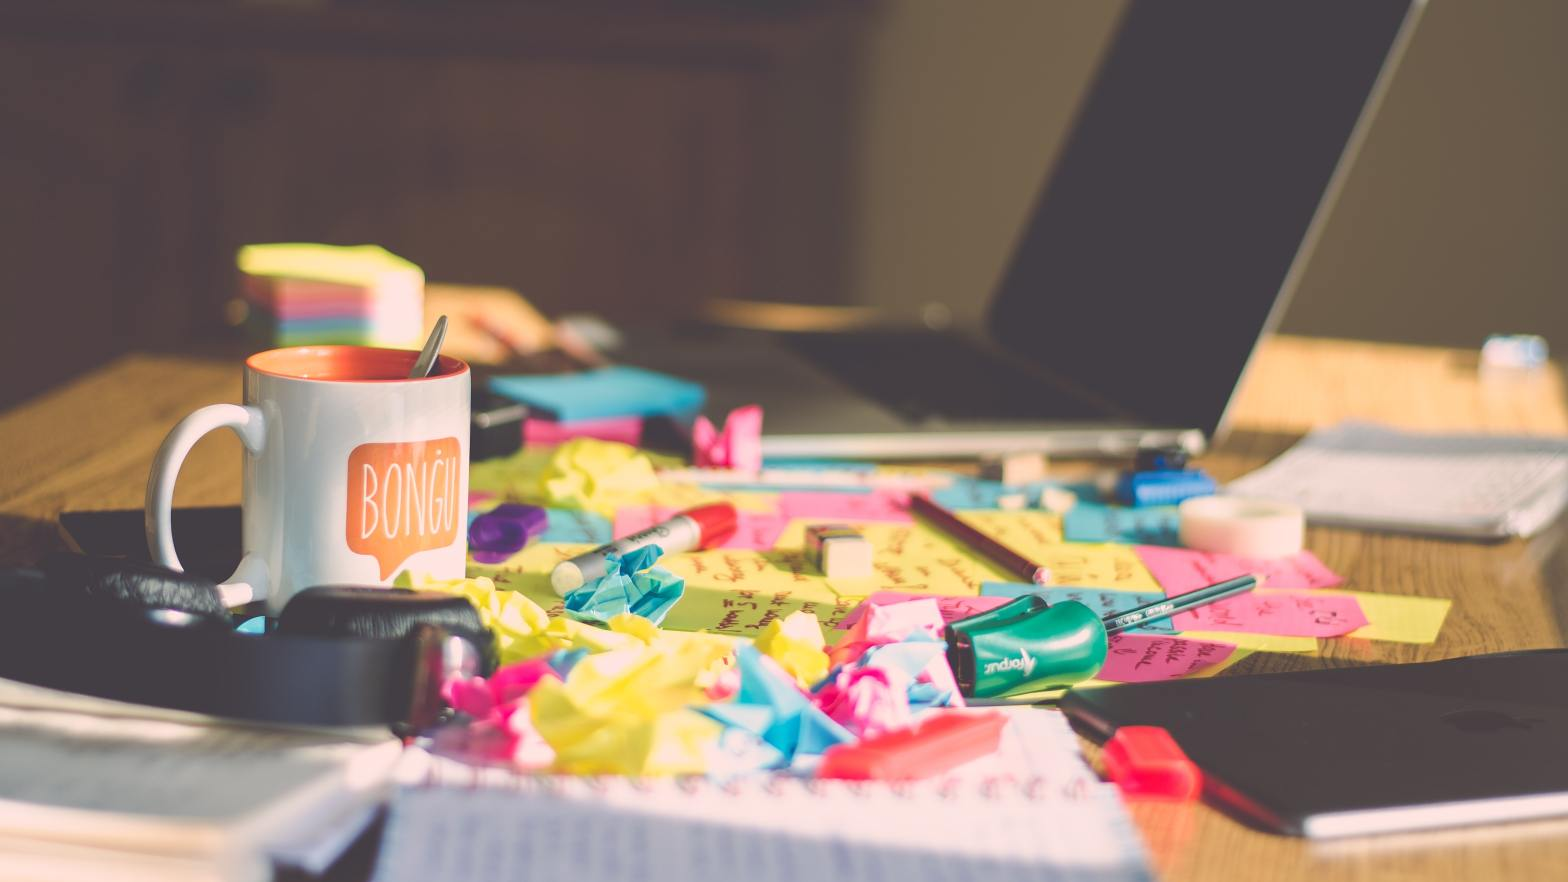 Interior designers, don't confuse chaos and creativity. Get organised to release your creativity